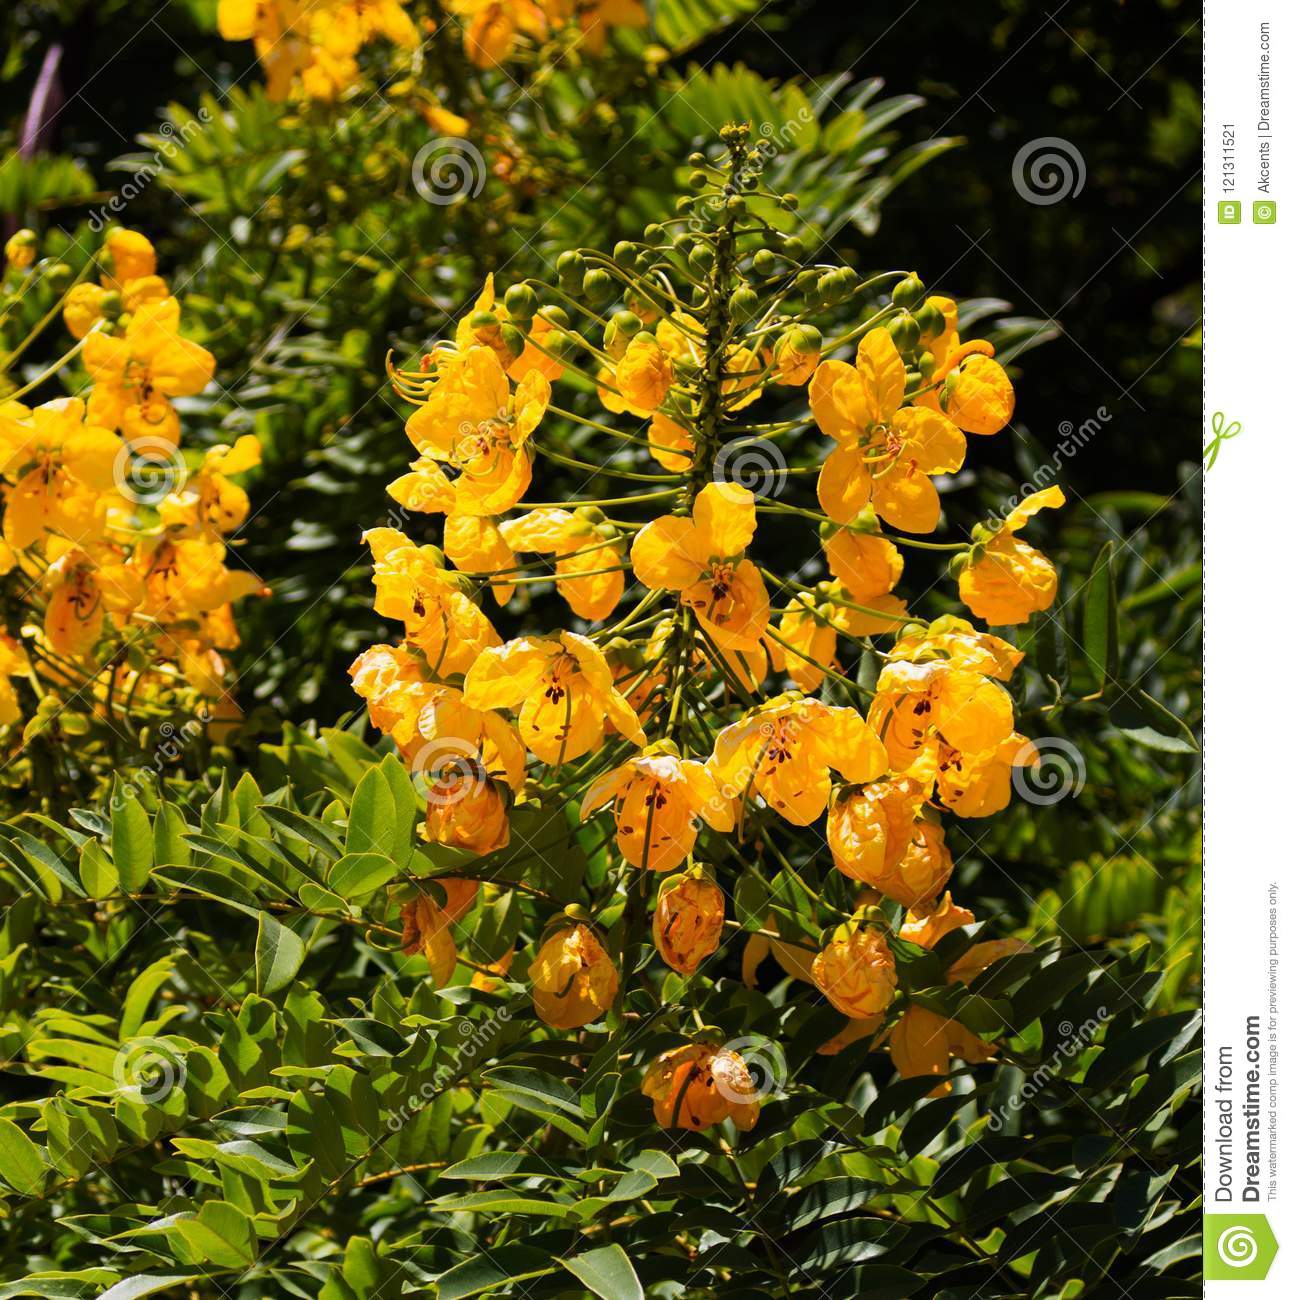 Senna Candolleana Golden Cassia Cluster Of Yellow Flowers Stock